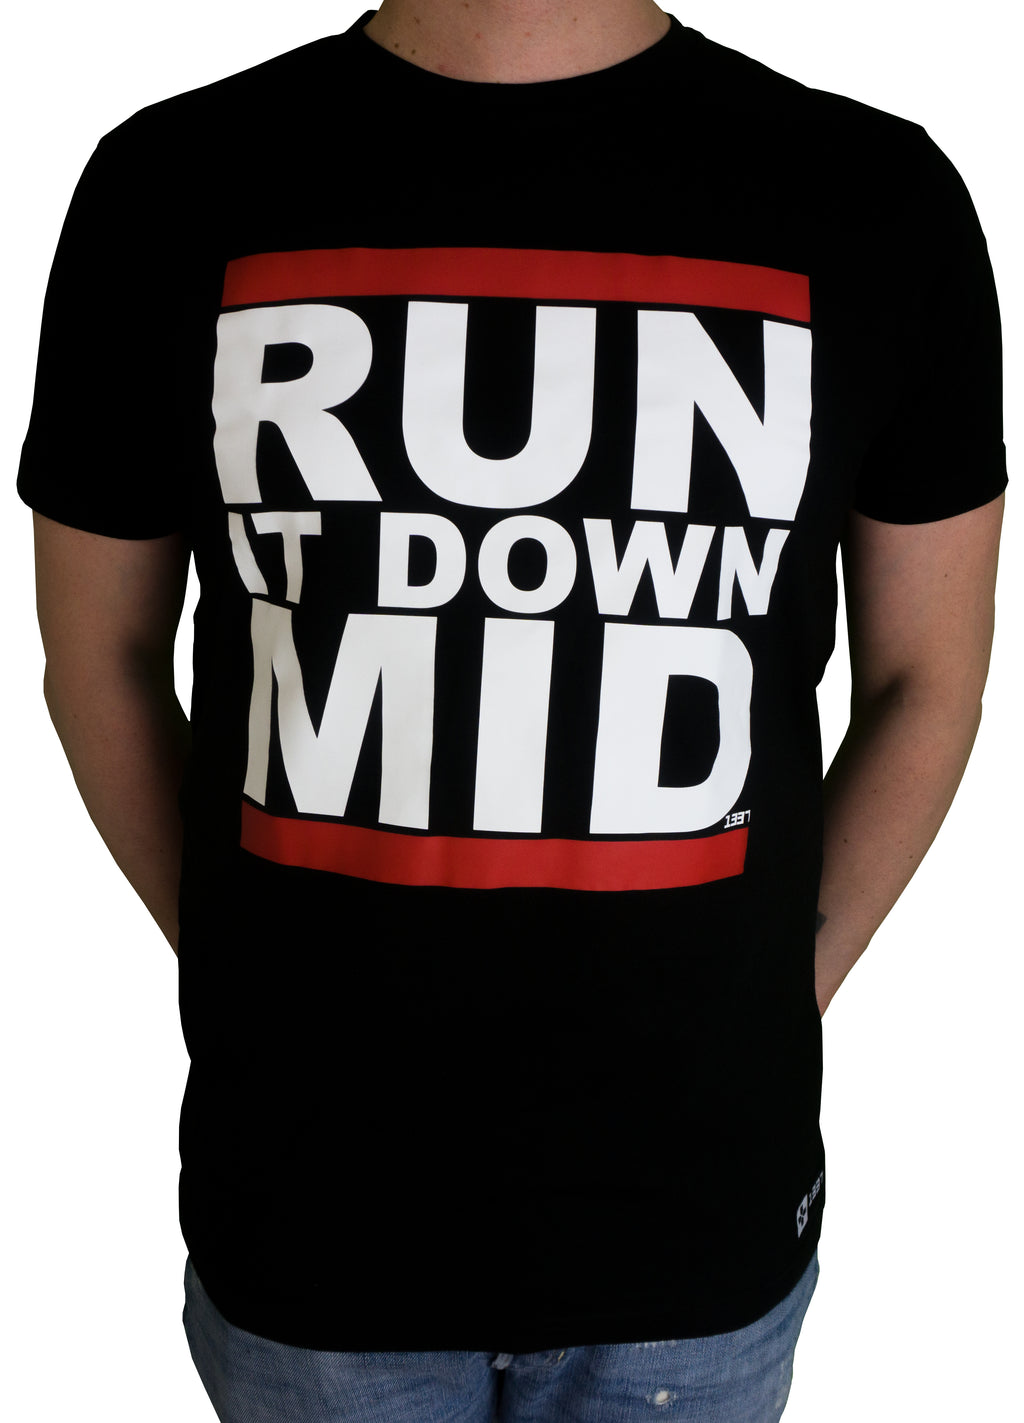 RUN IT DOWN MID Shirt - 1337Streetwear